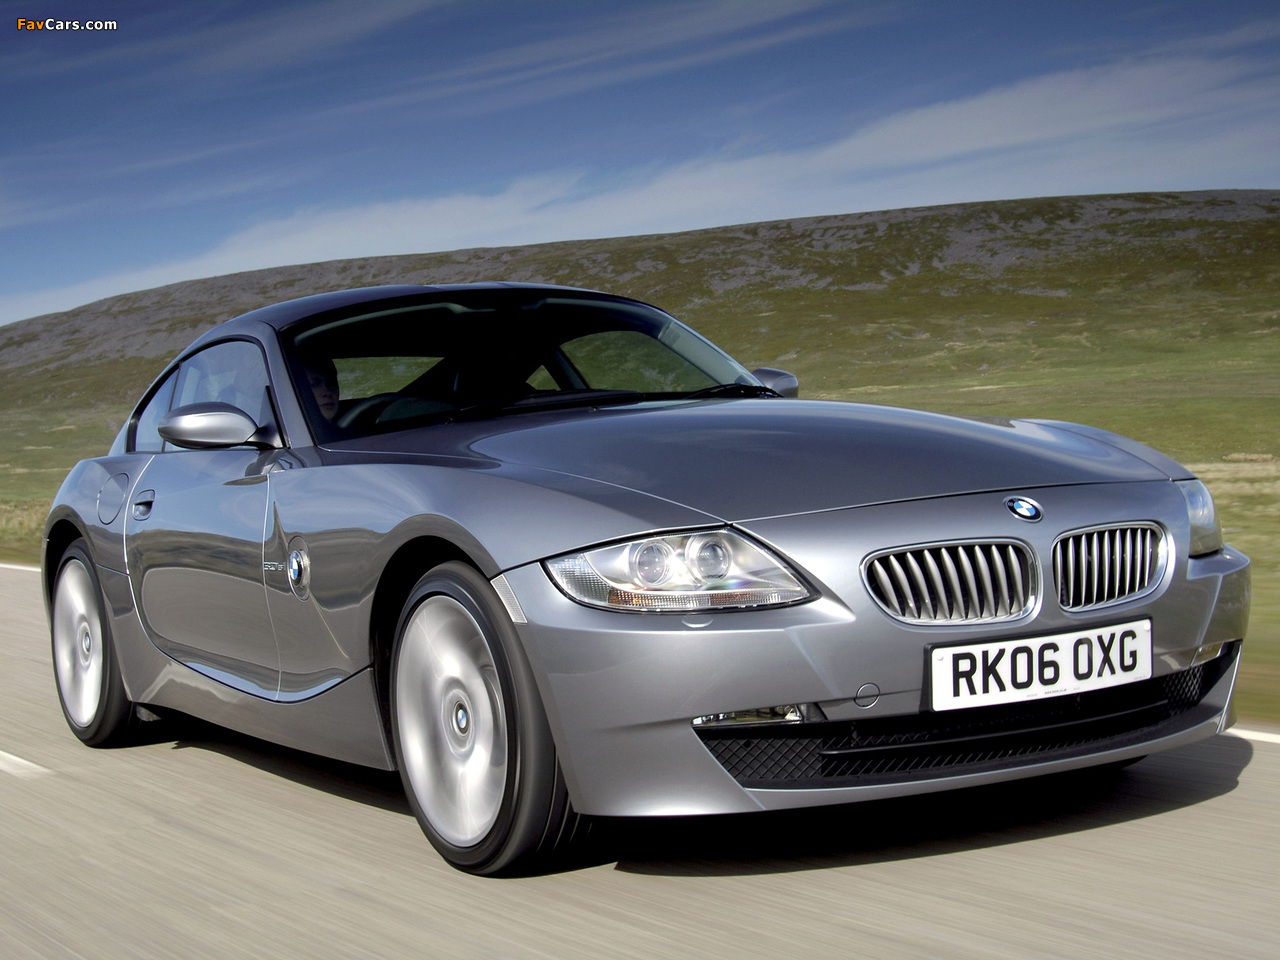 Pictures Of Bmw Z4 3 0si Coupe Uk Spec 2006 09 1280x960